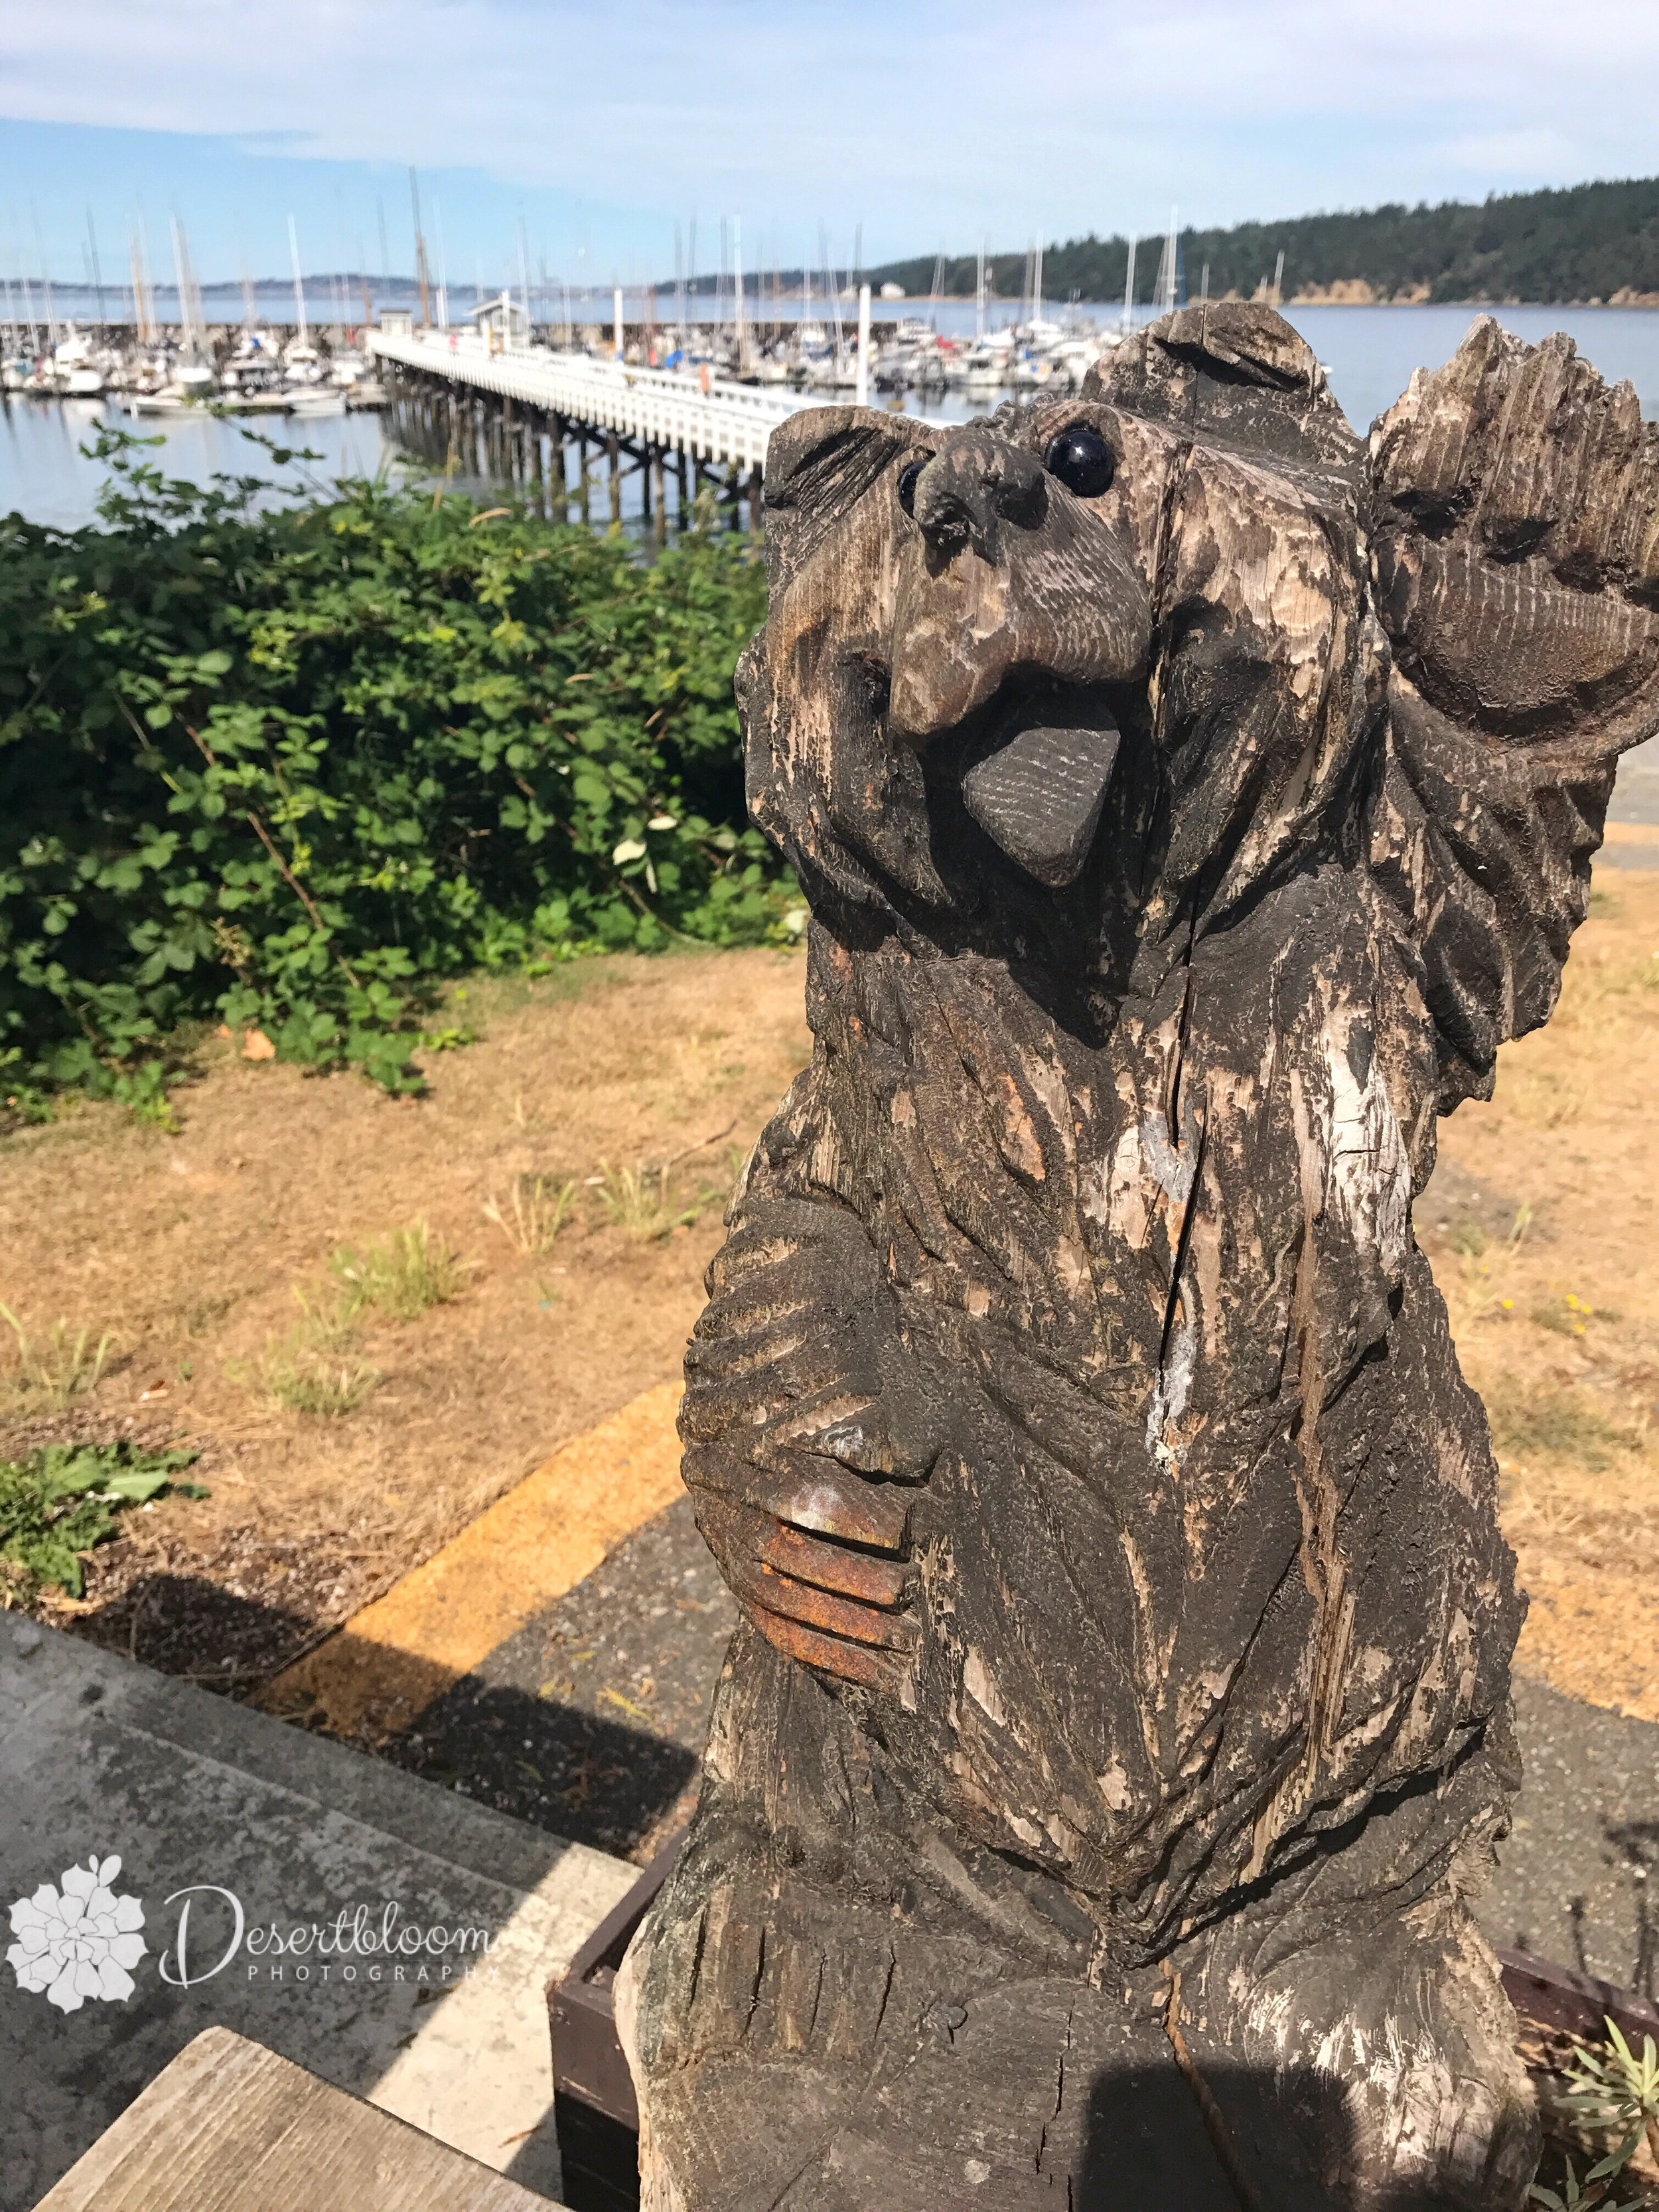 Port Hadlock - not much there but the private marina and this bear